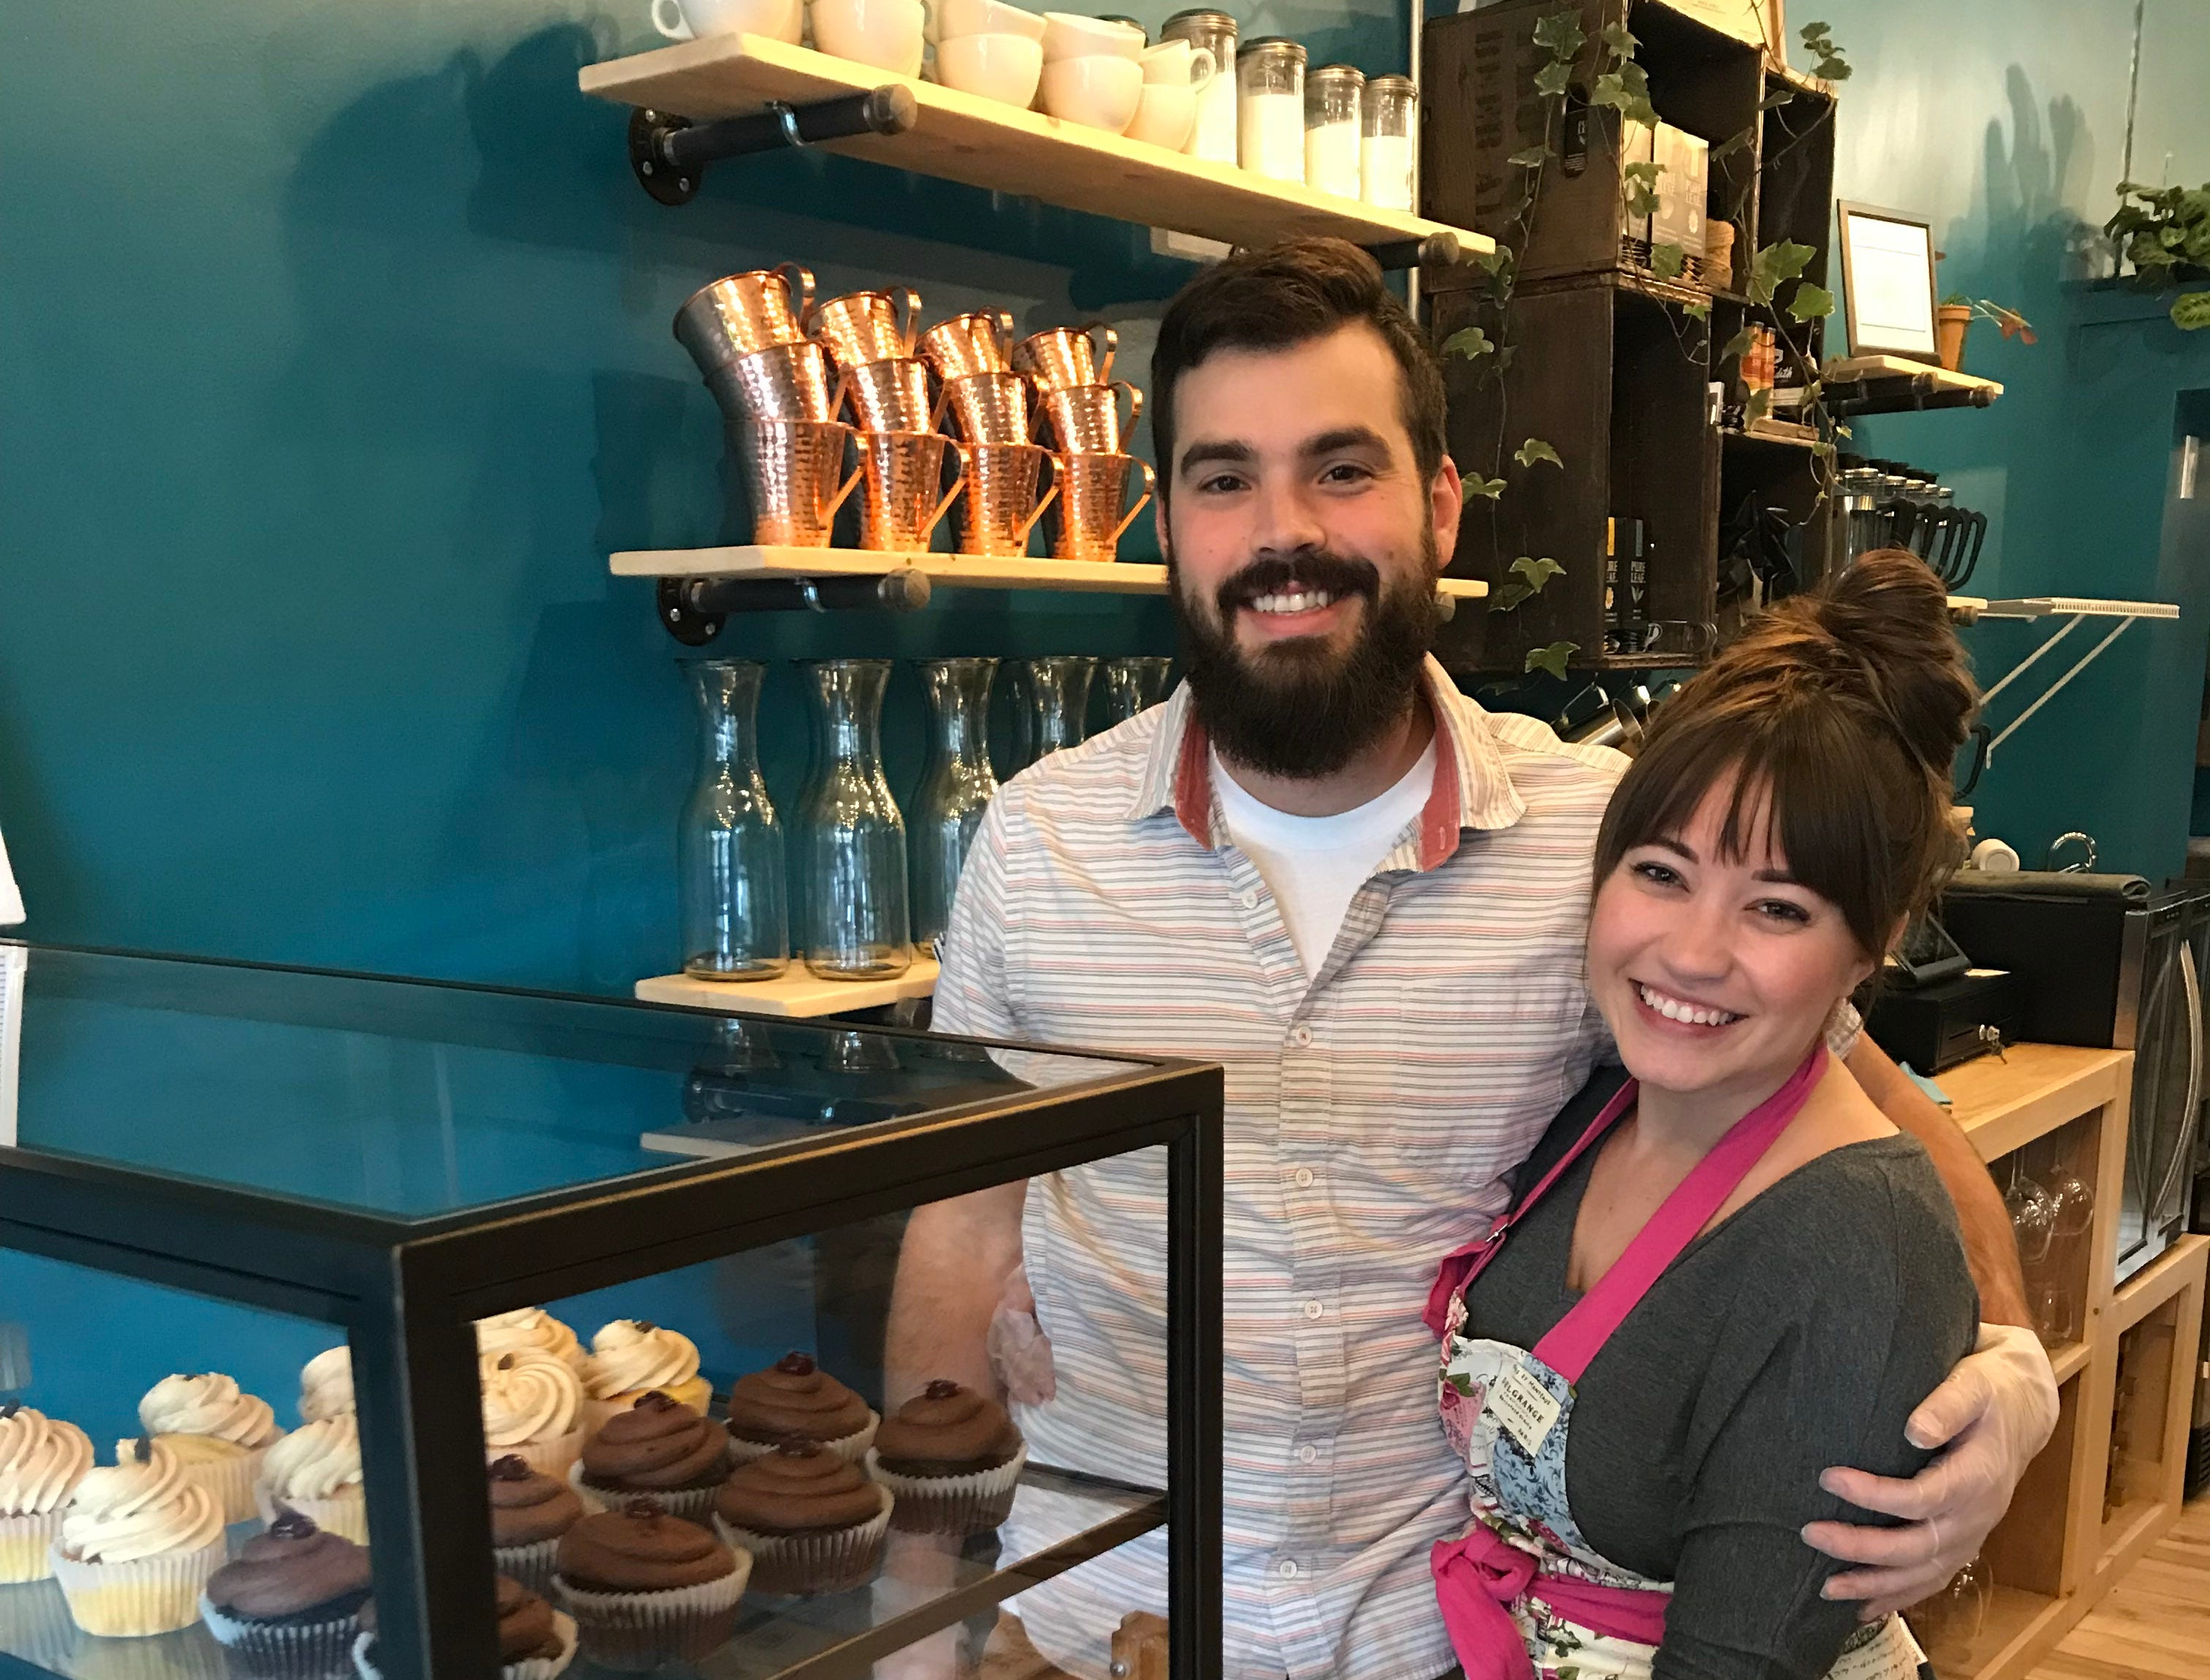 Mark Mendola and Haley Shuman are the owners of Caramel Bakery and Bar.